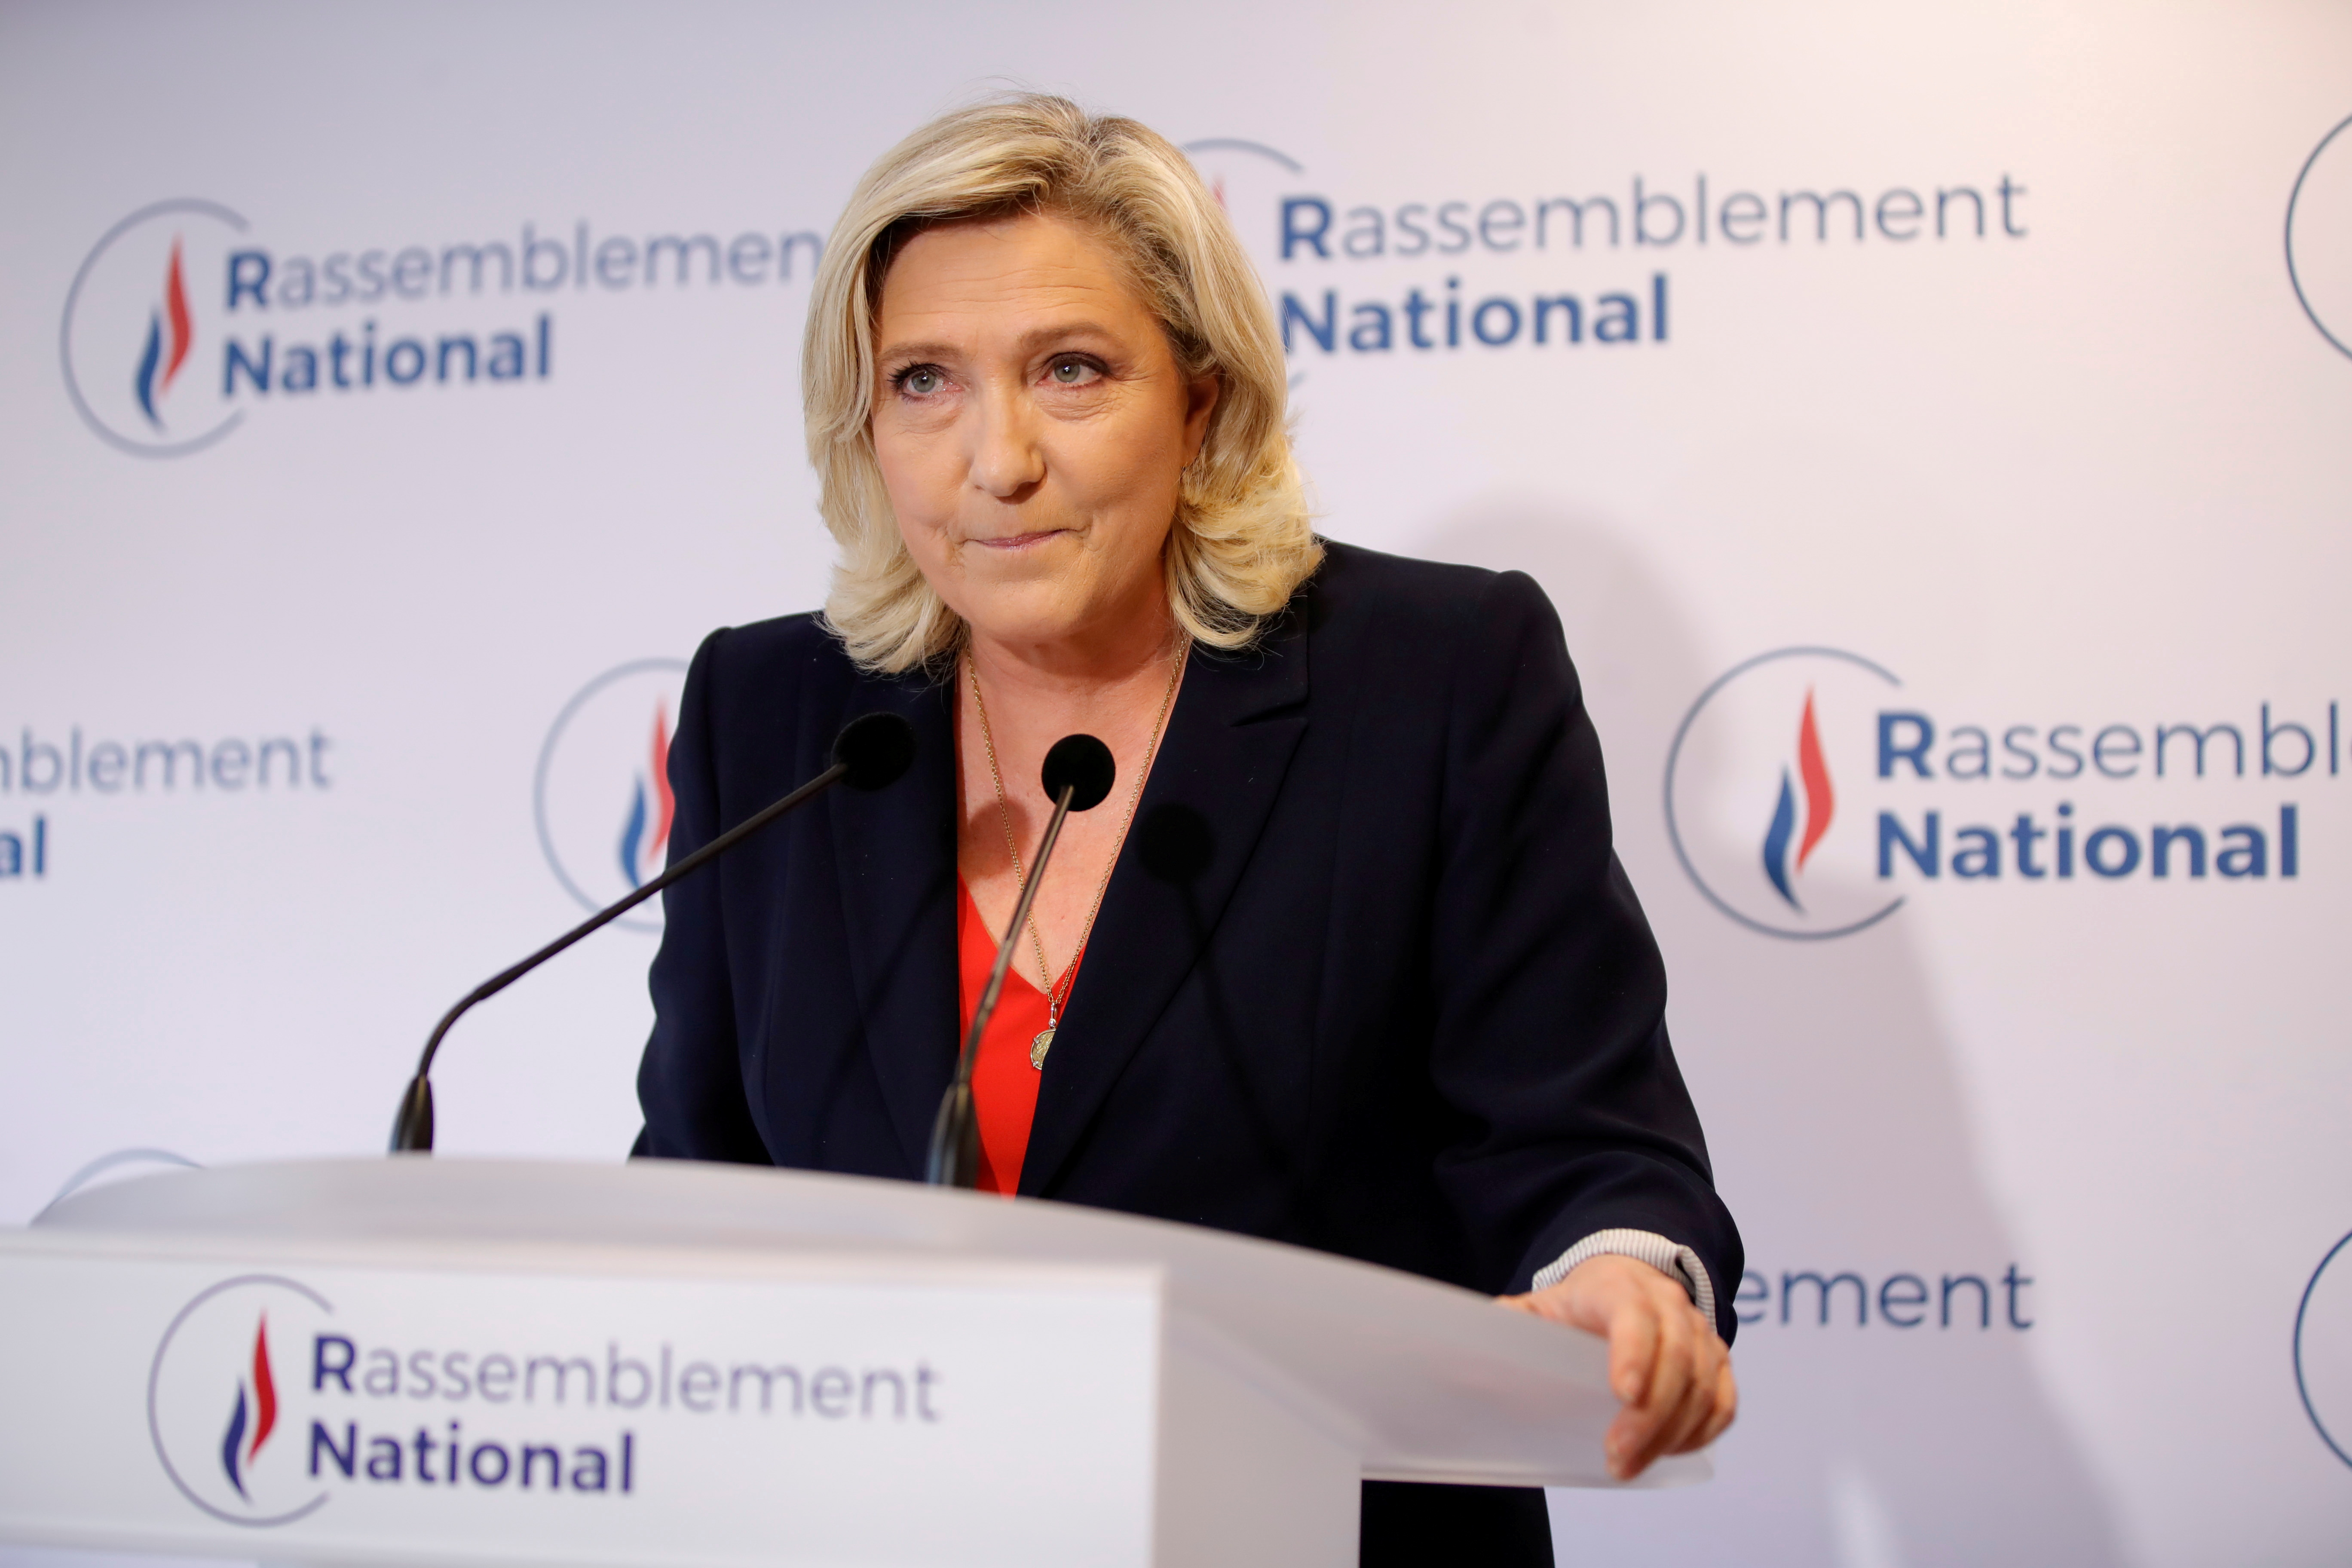 French far-right National Rally (Rassemblement National) party leader Marine Le Pen delivers a speech in reaction to the outcomes of the second round of French regional and departmental elections, in Nanterre, near Paris, France June 27, 2021. REUTERS/Sarah Meyssonnier/File Photo